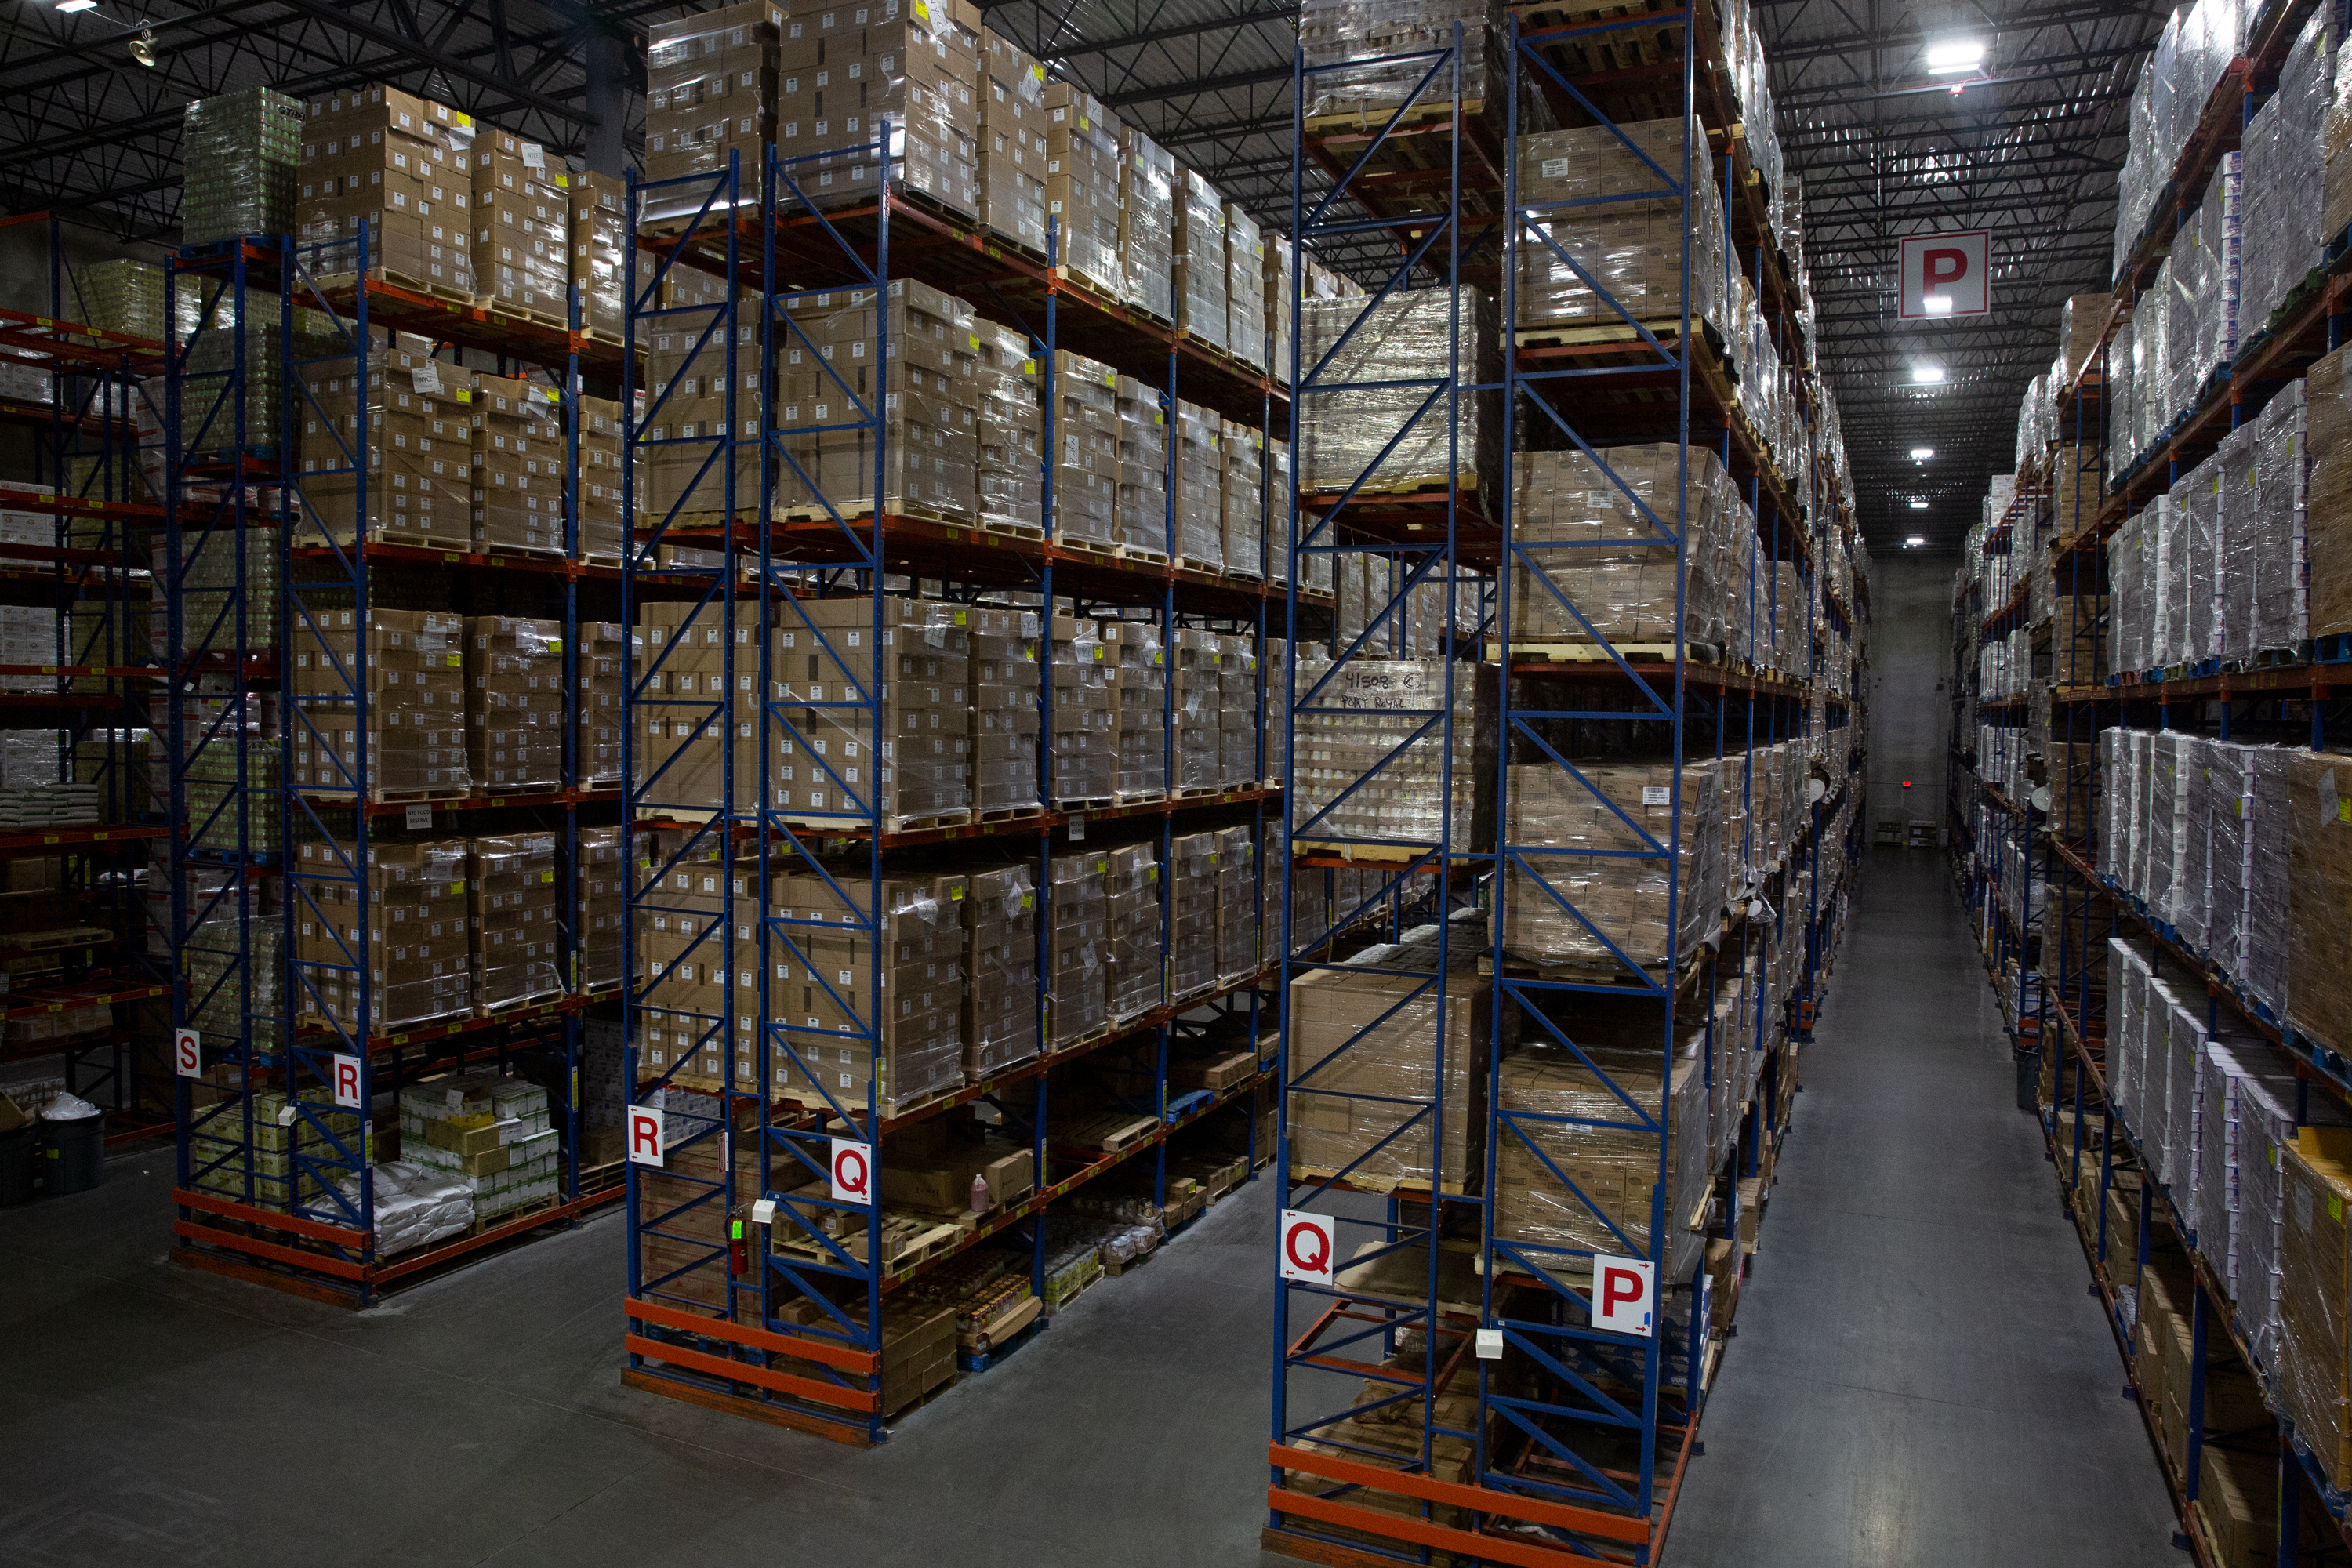 The city has stored 150,000 cases of food in a Driscoll warehouse in New Jersey, Sept. 18, 2020.